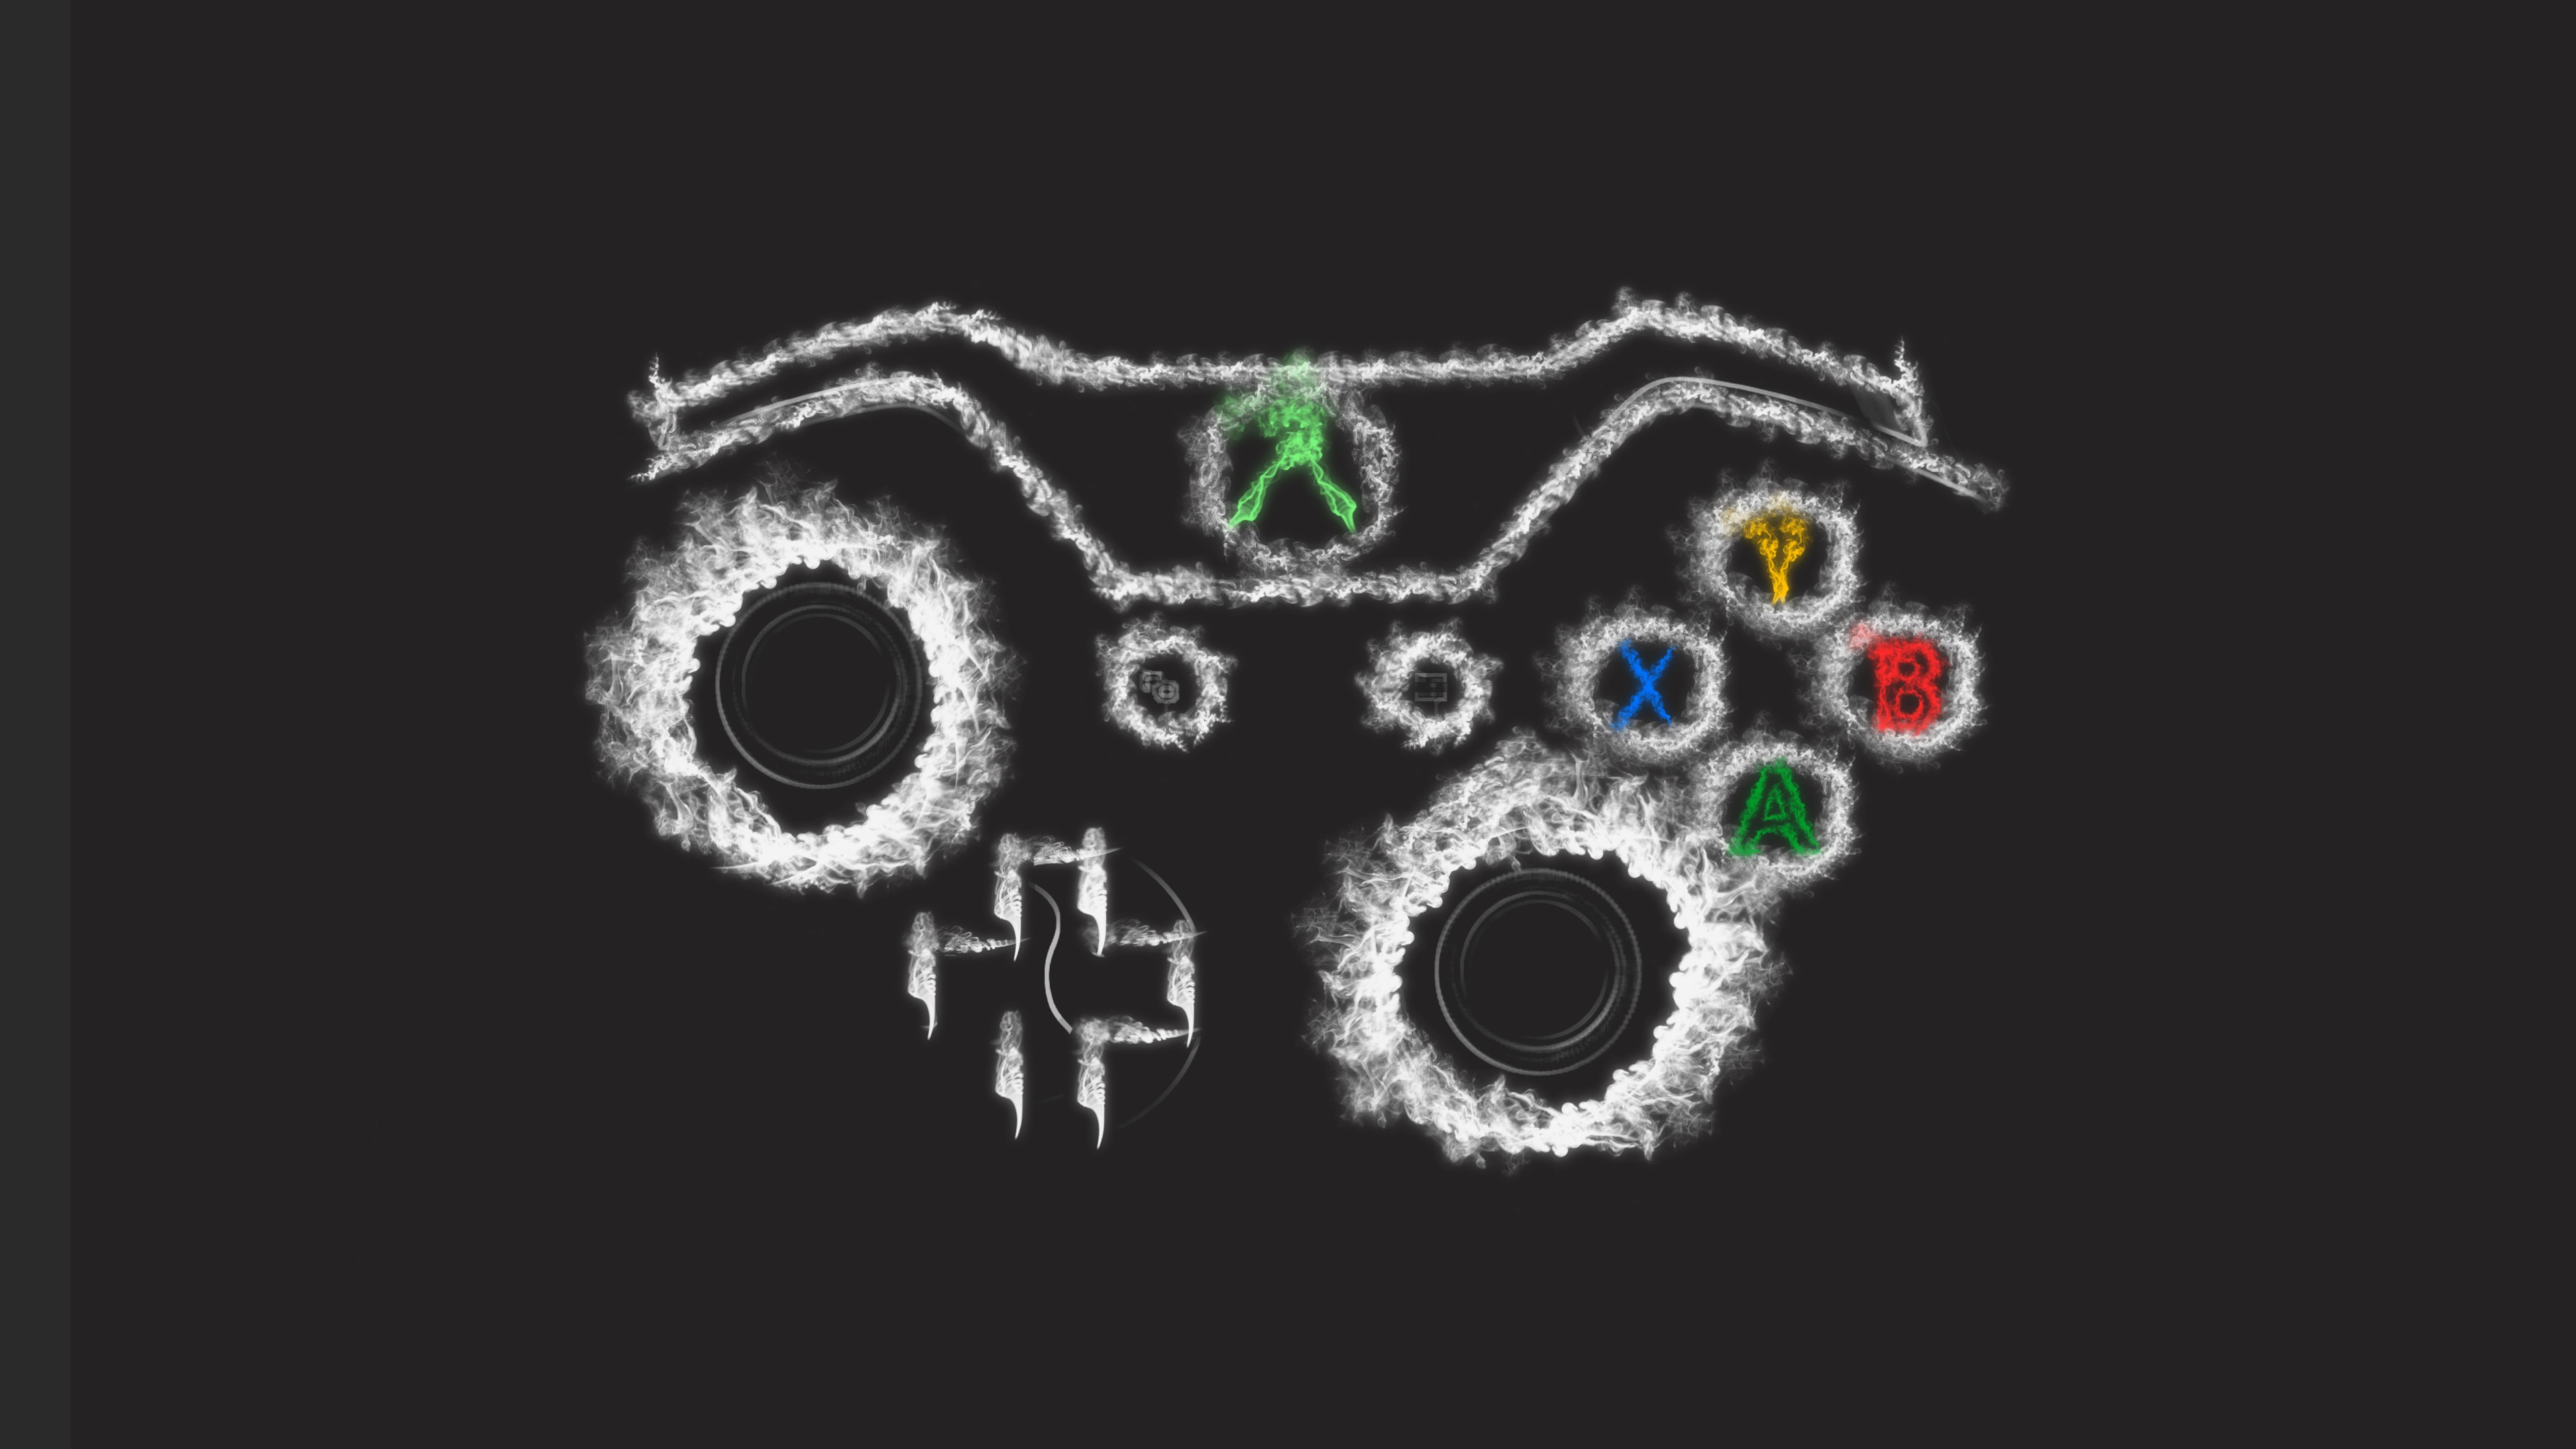 Xbox Controller Art, HD Computer, 4k Wallpapers, Images